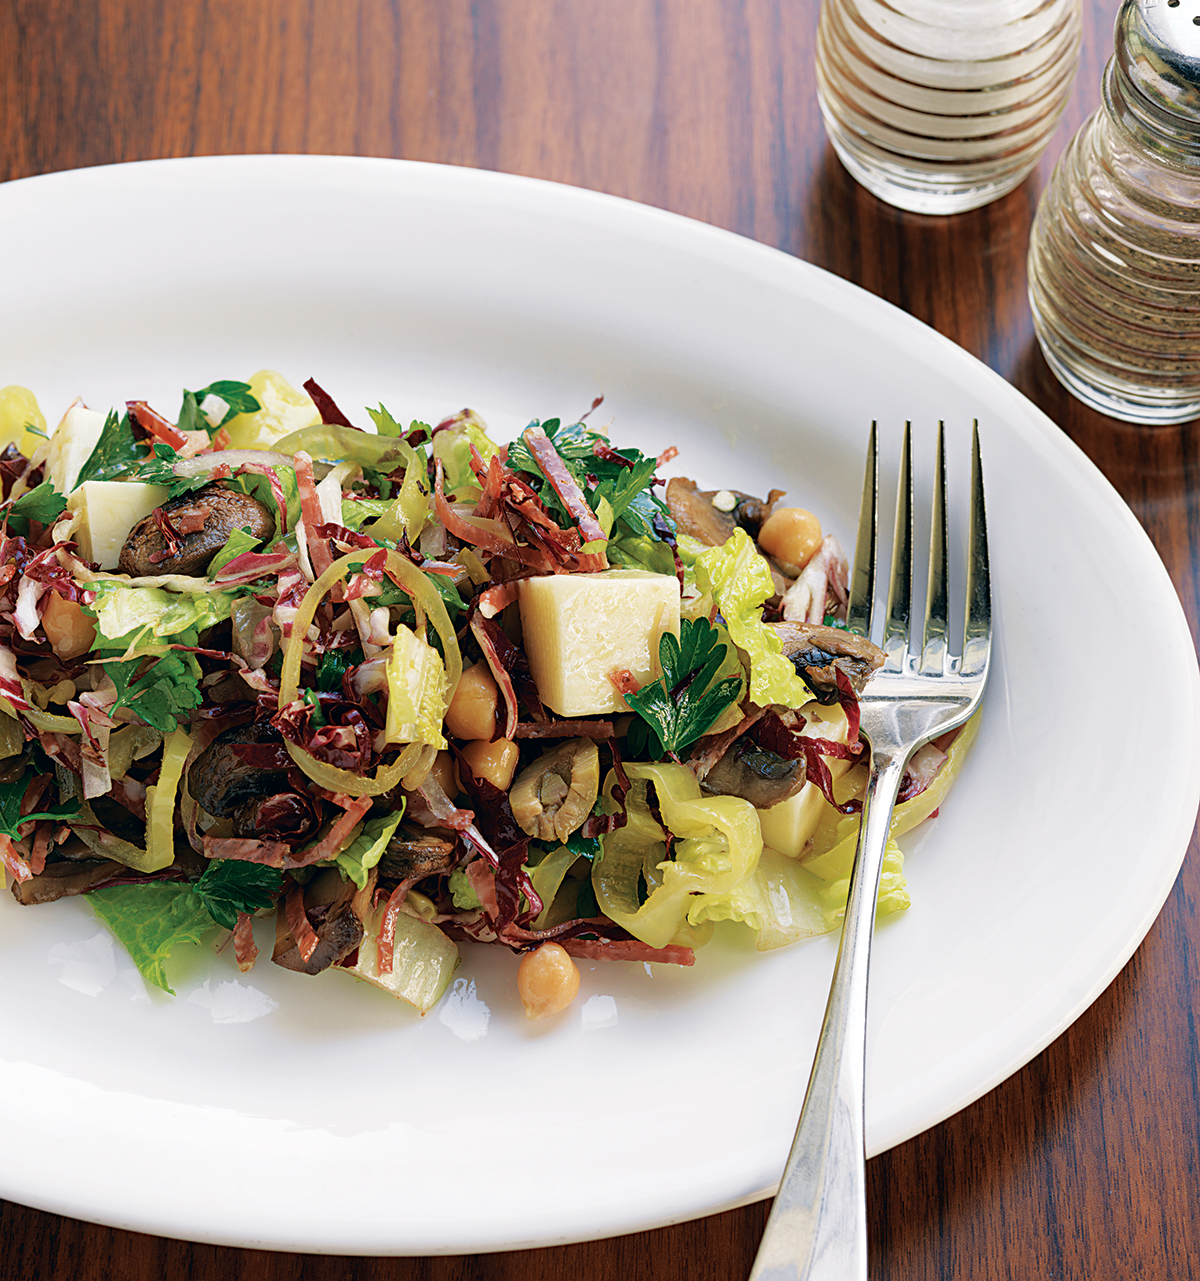 Photo by Michael Piazza